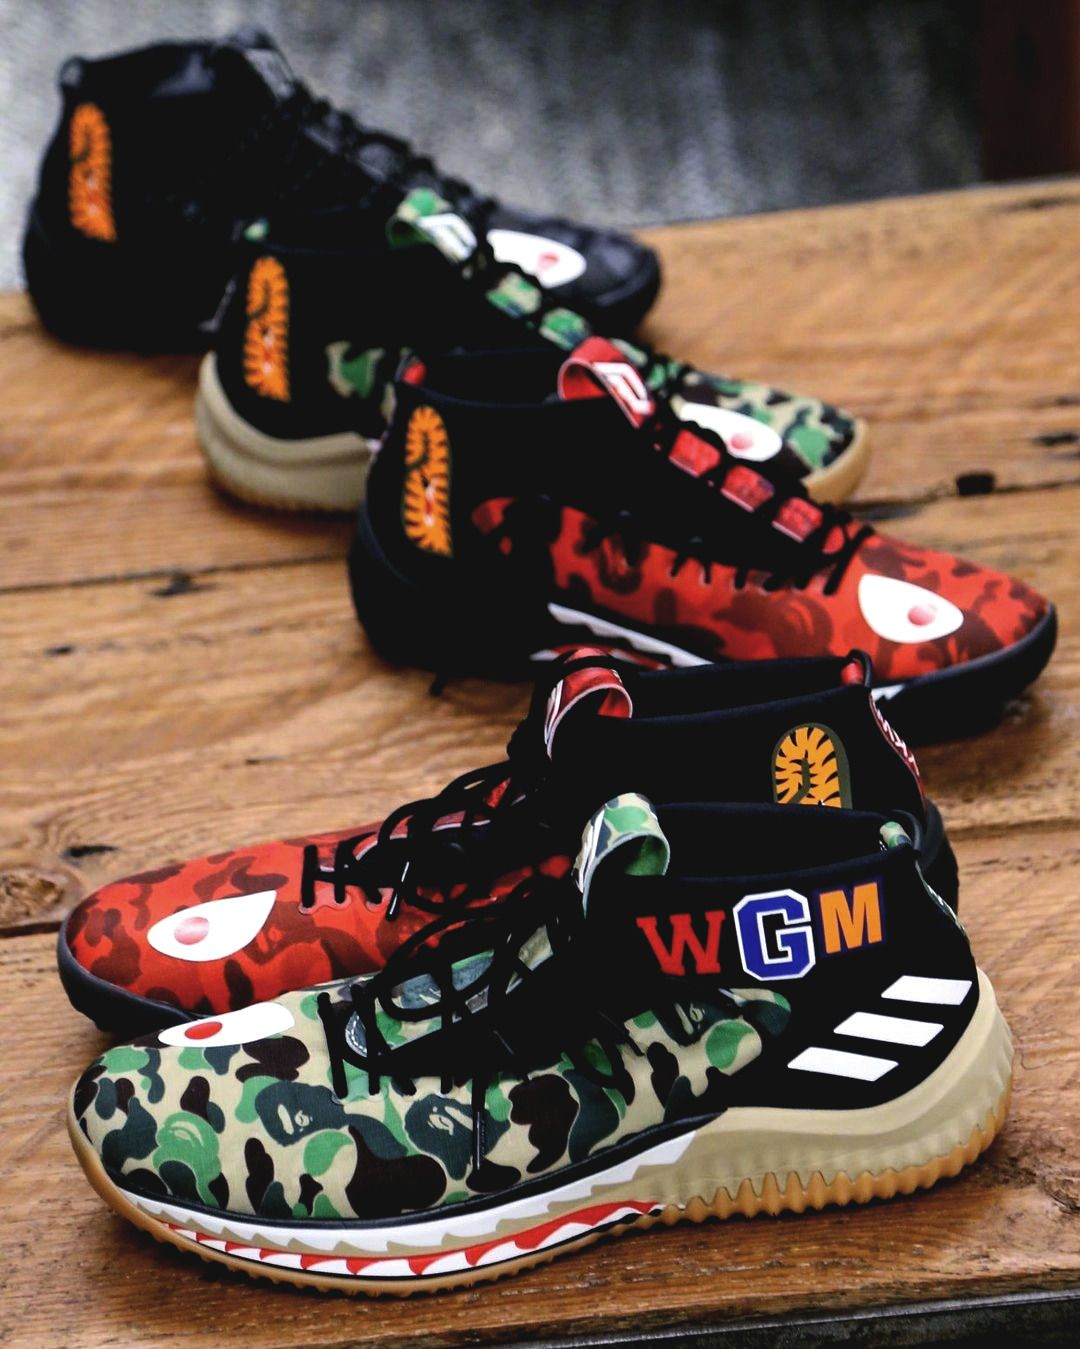 a415ee9ea059 Bape collabs with Adidas once again